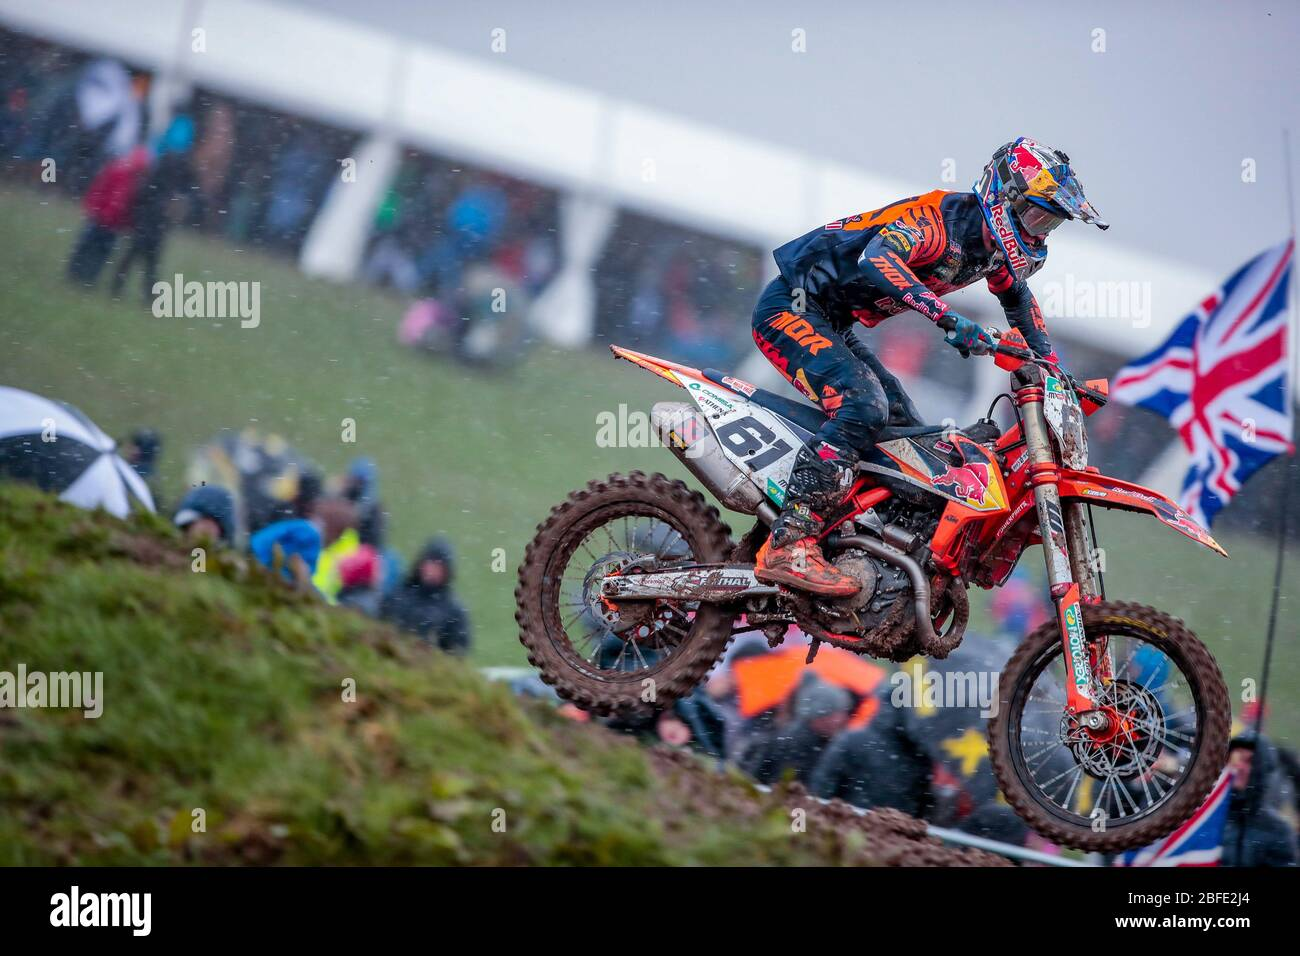 Winchester, Italy. 01st Mar, 2020. jorge prado (spa) ktm factory racing during MXGP of Great Britain, Motocross in winchester, Italy, March 01 2020 Credit: Independent Photo Agency/Alamy Live News Stock Photo